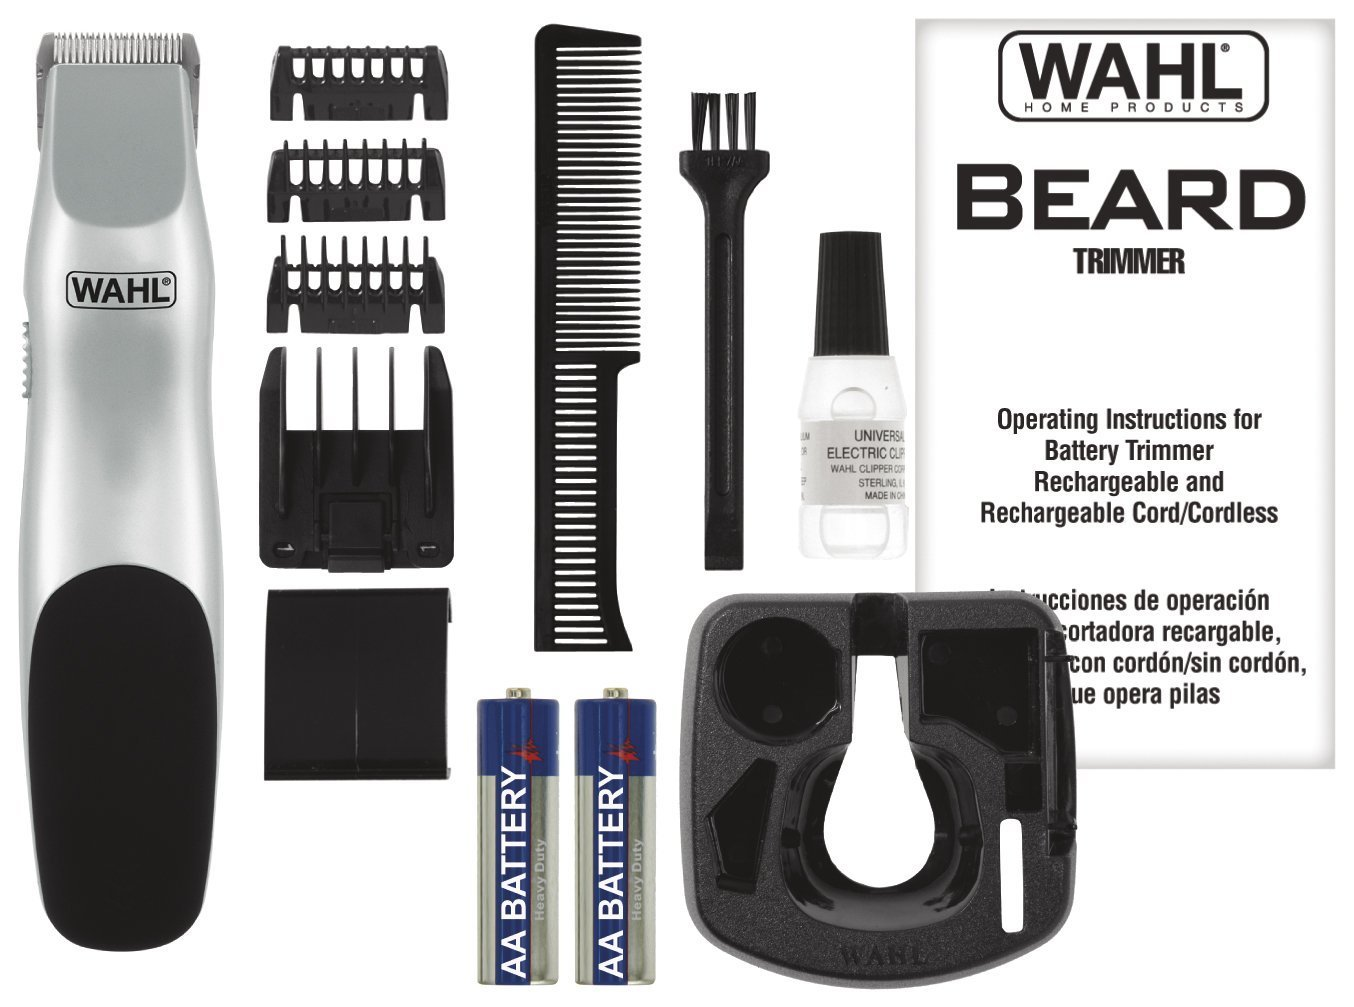 wahl beard battery trimmer 9906 717 clippers trimmers. Black Bedroom Furniture Sets. Home Design Ideas